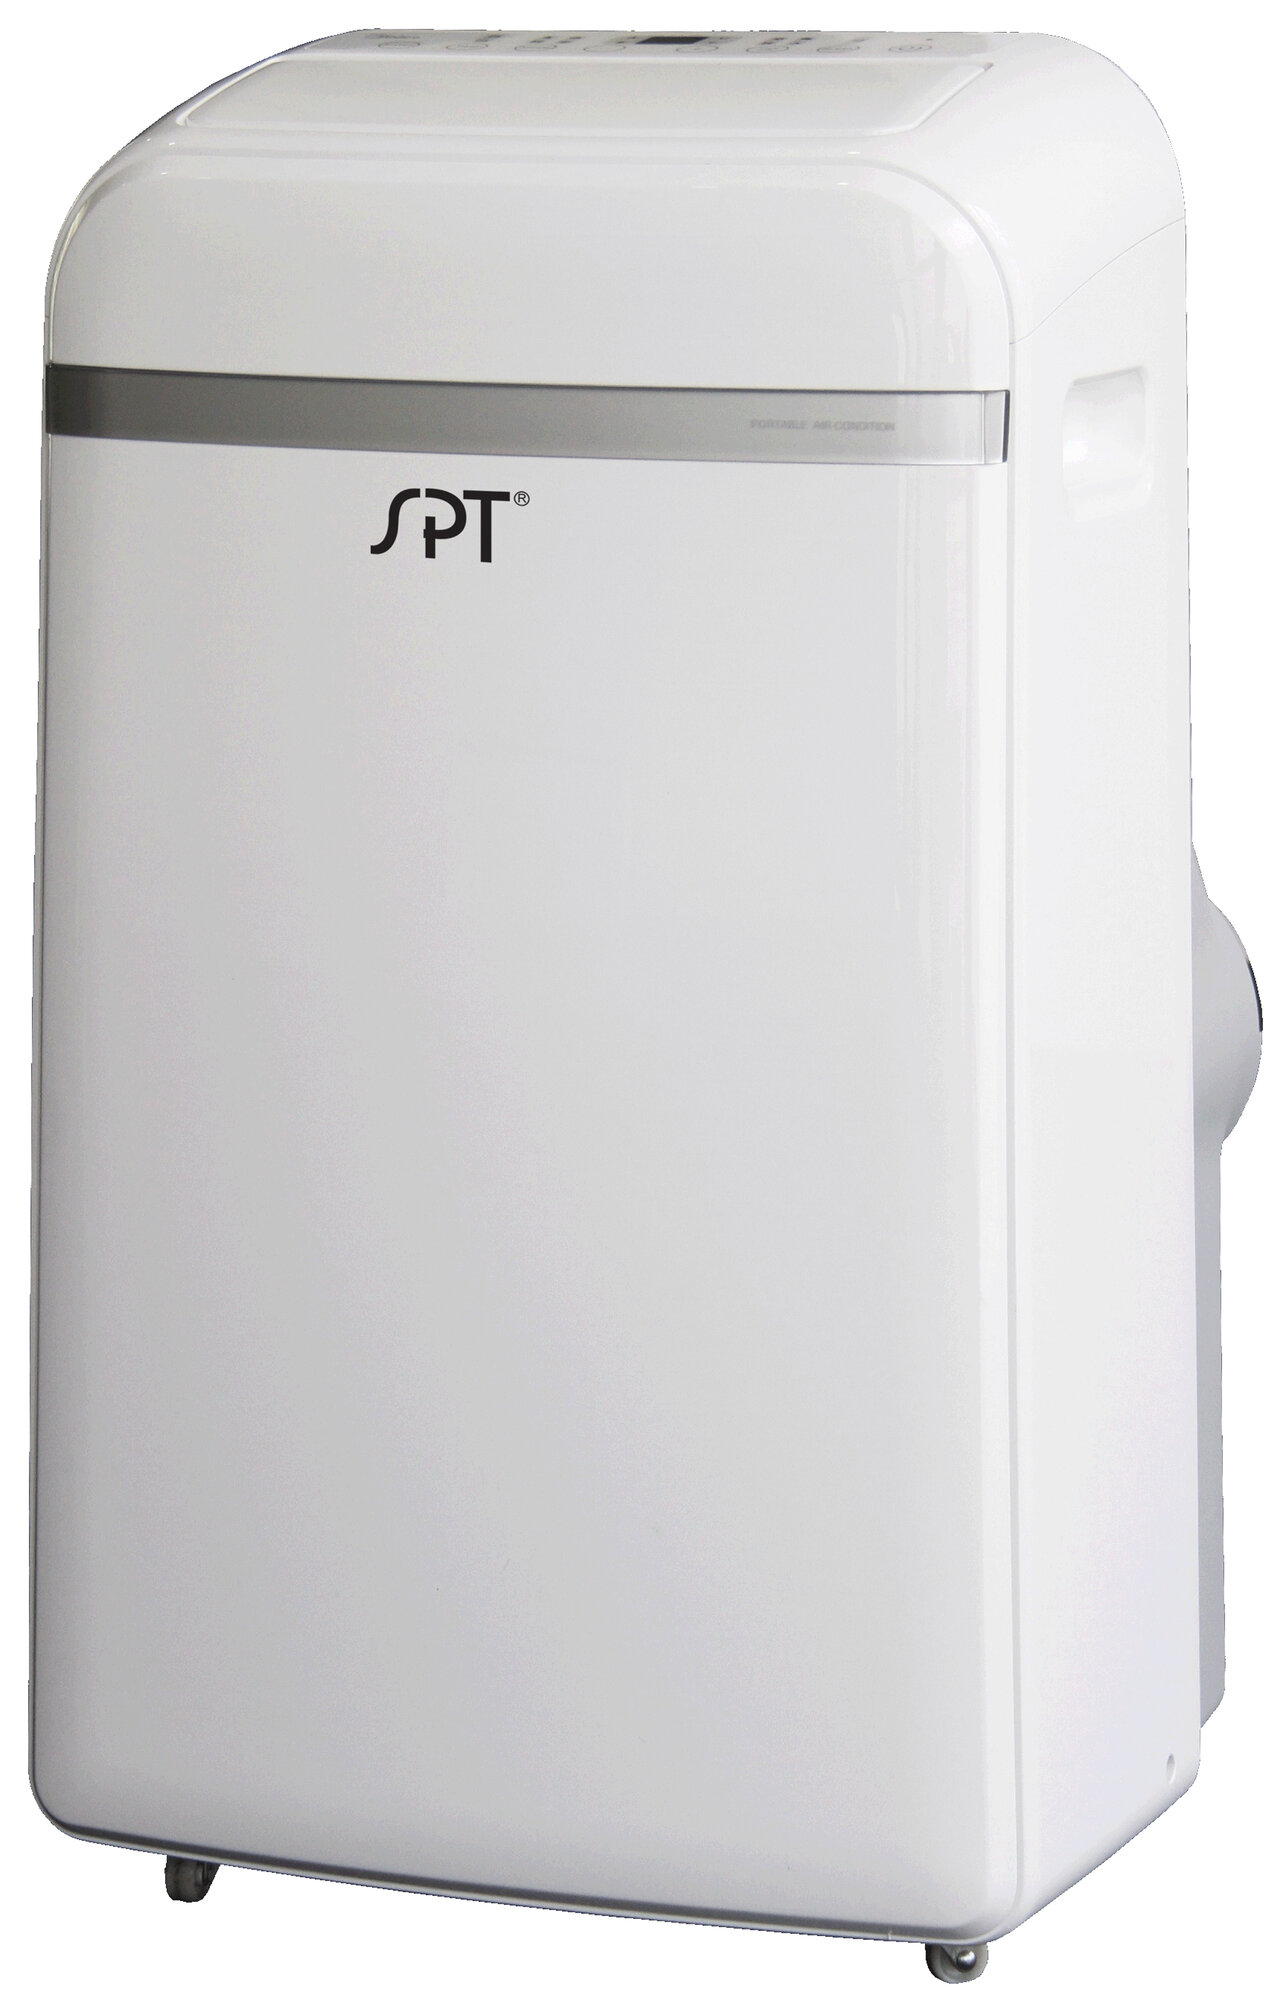 #515059 Sunpentown 14 000 BTU Portable Air Conditioner With Remote  Most Recent 13530 Portable Air Conditioner Thermostat image with 1277x2000 px on helpvideos.info - Air Conditioners, Air Coolers and more